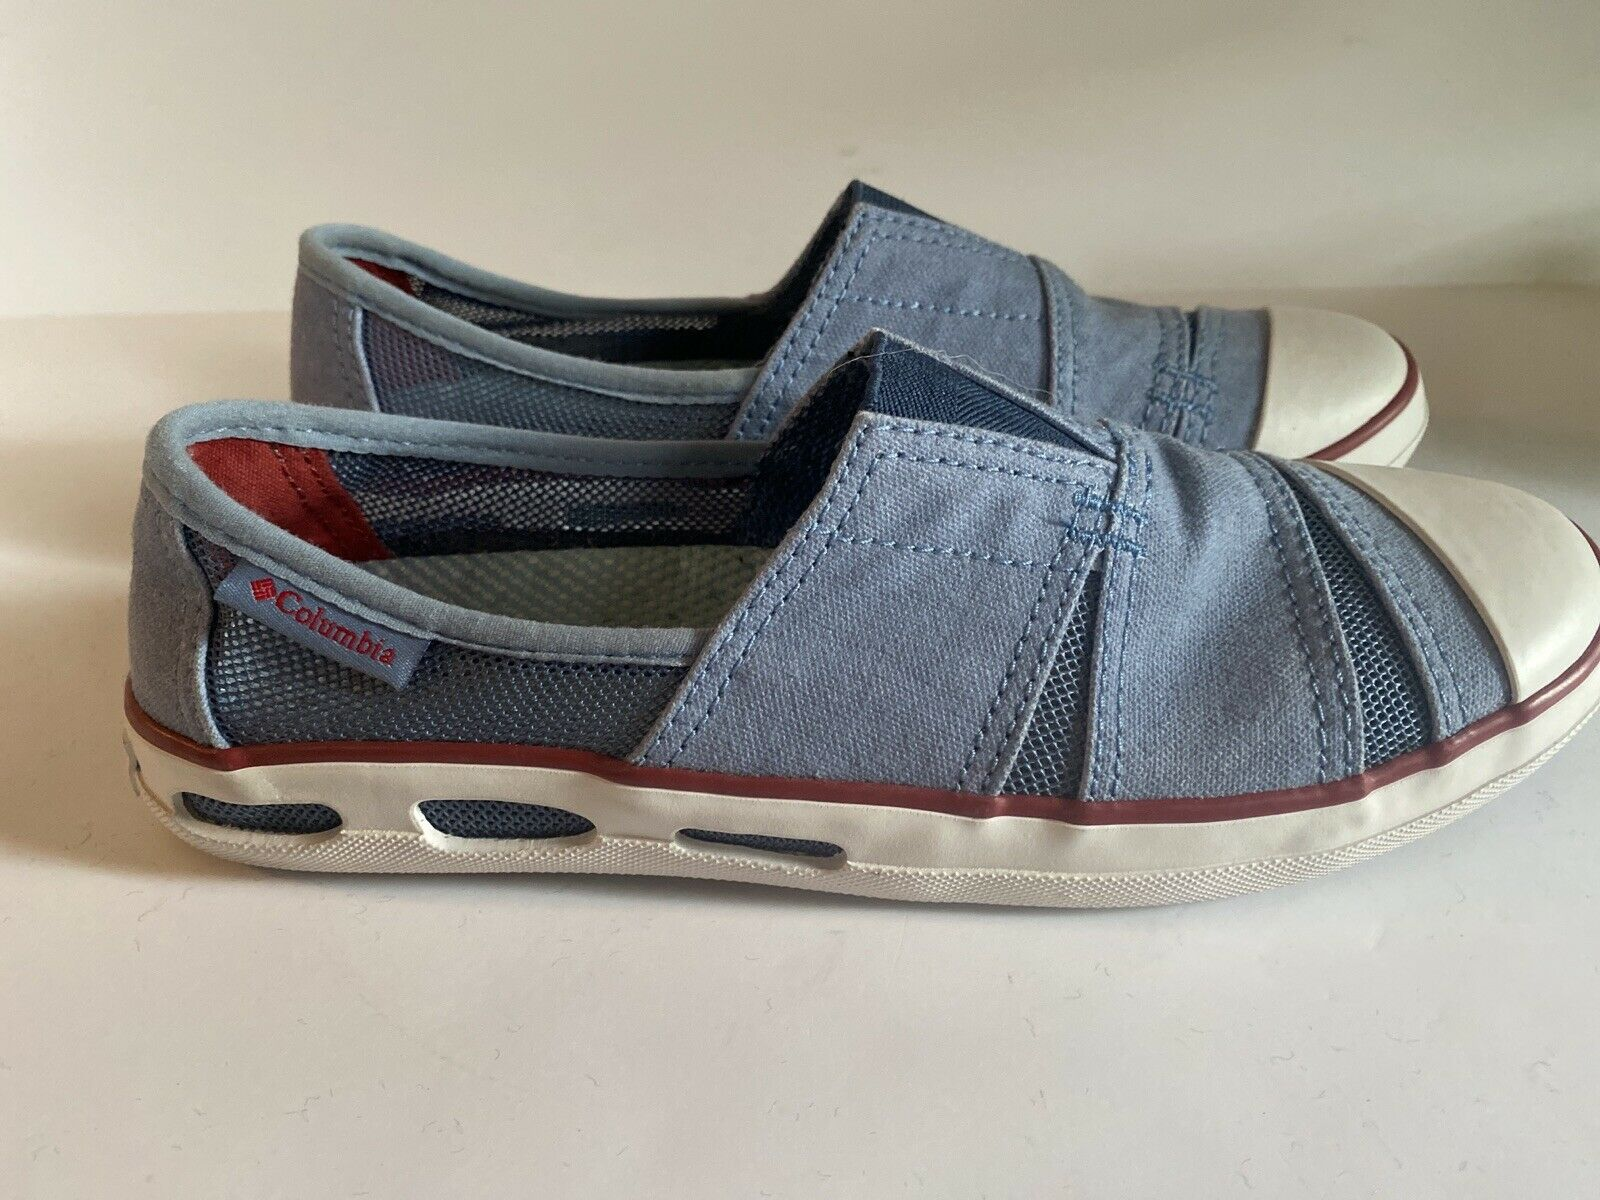 NWOB Columbia Blue Canvas Vented Slip On Loafers Women's Shoes Sz 6 #BL2716-411